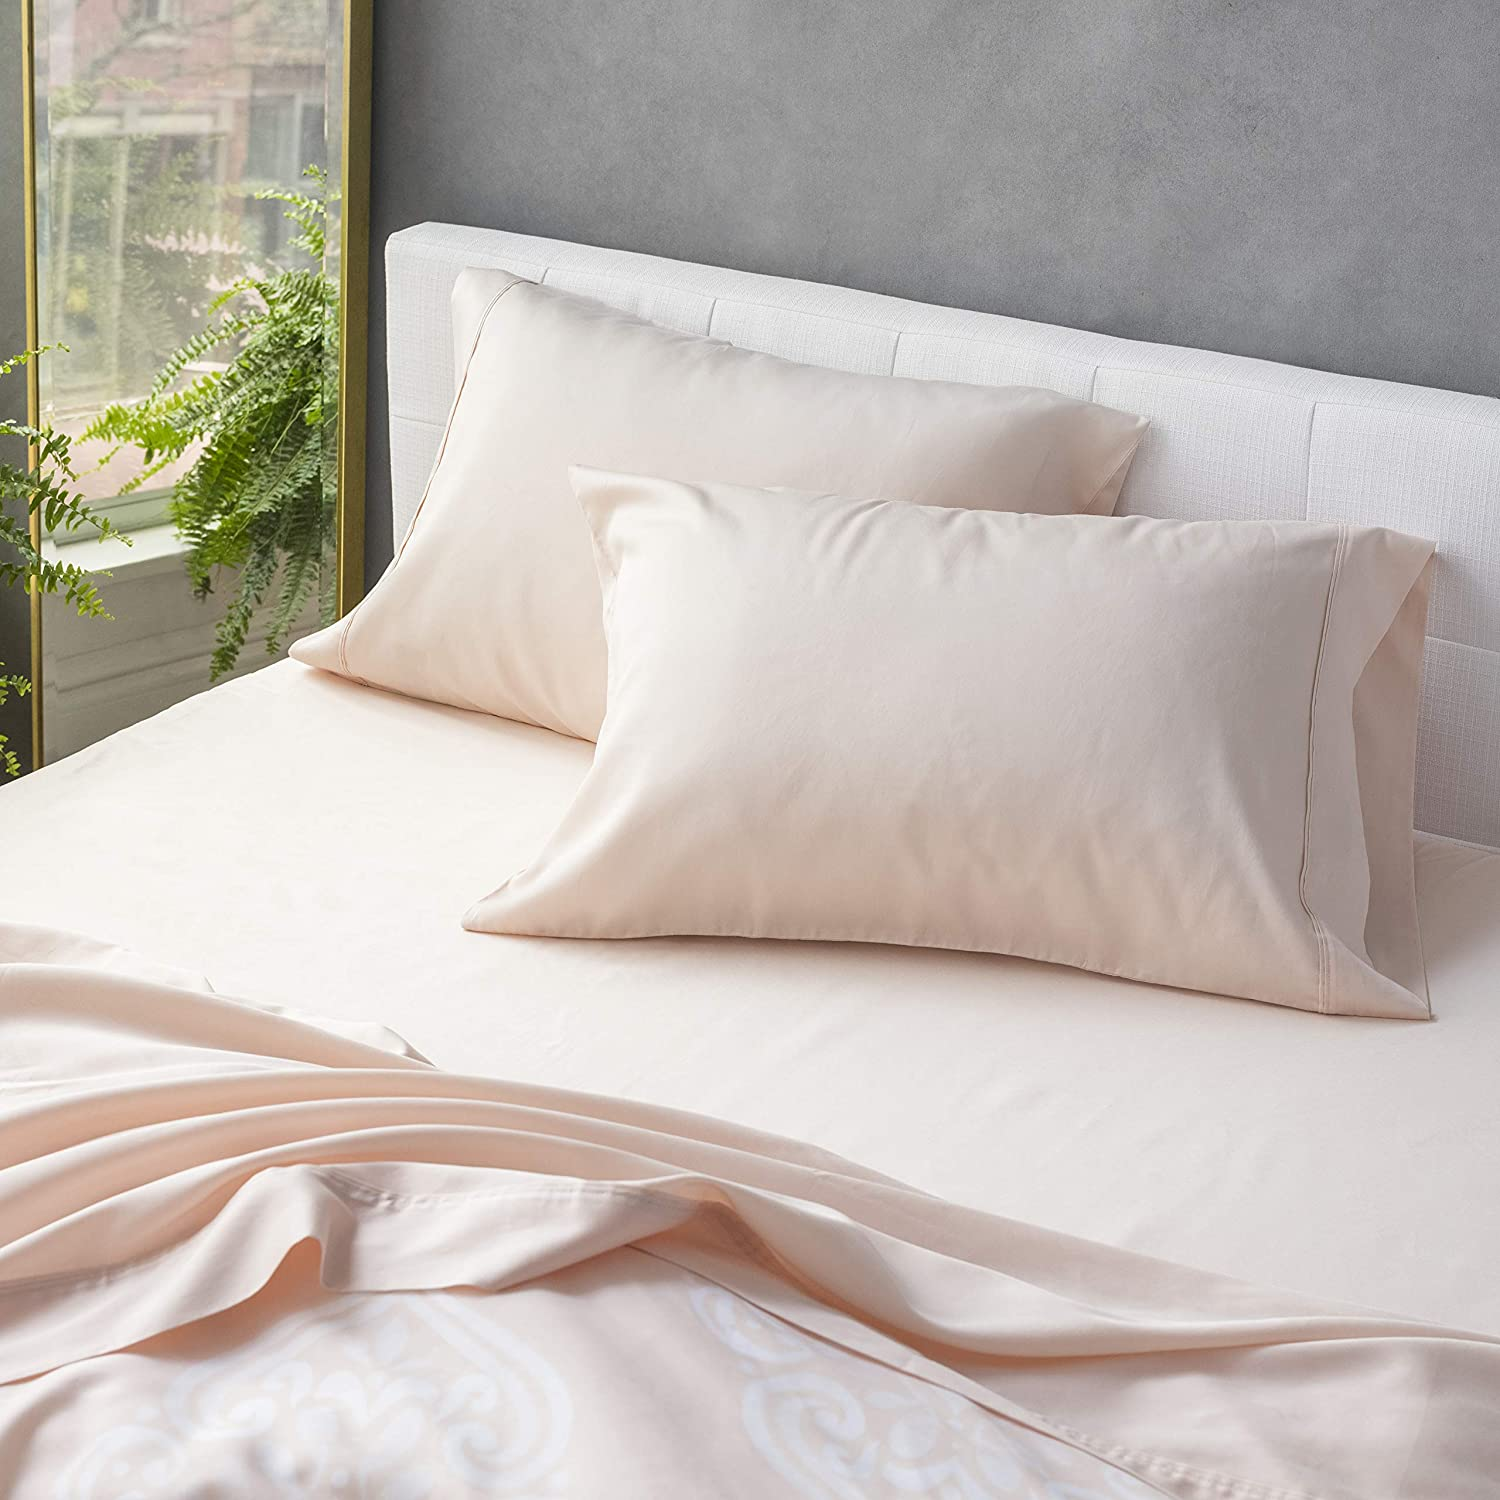 Welhome 300 Thread Count King Size Cotton Tencel Lyocell Sateen Sheet Set - 4 Piece - Supersoft & Smooth - Luxurious Feel - Sustainable - Breathable - Deep Pocket - Blush